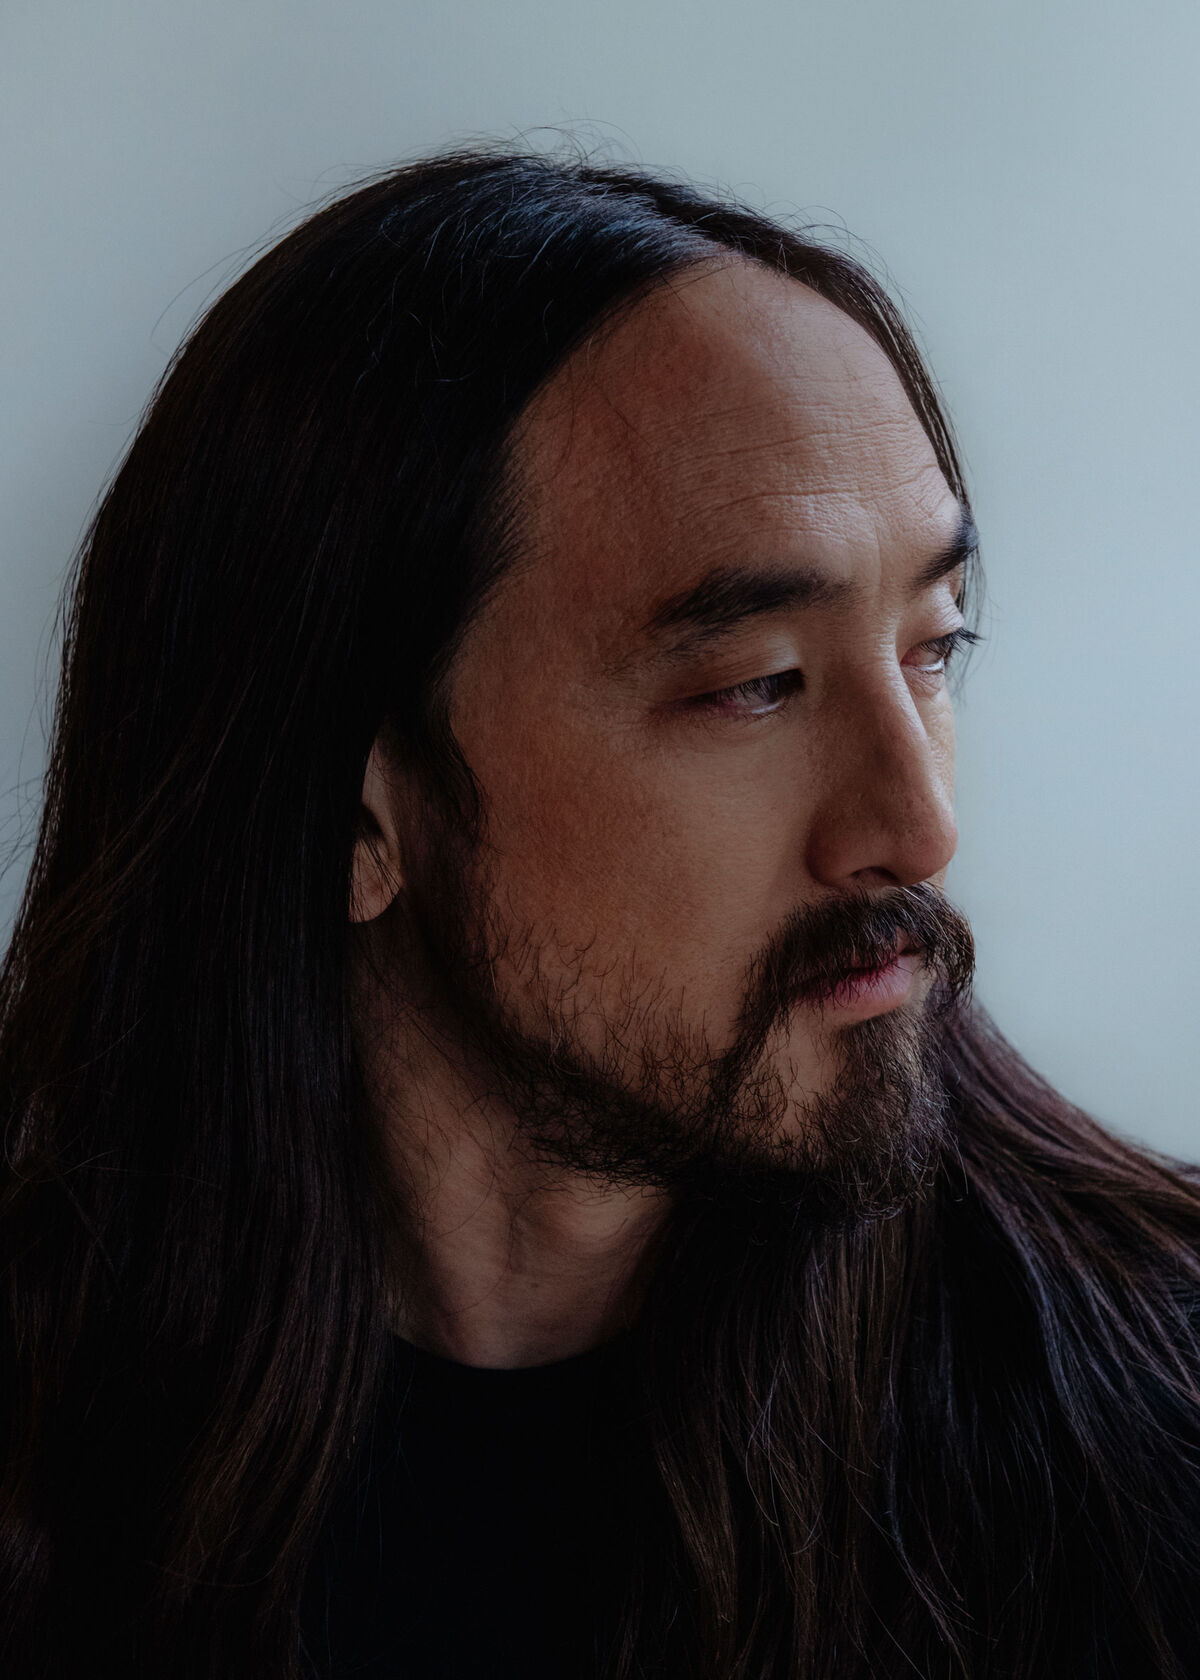 Portrait of Steve Aoki by Brian Guido for Artsy.